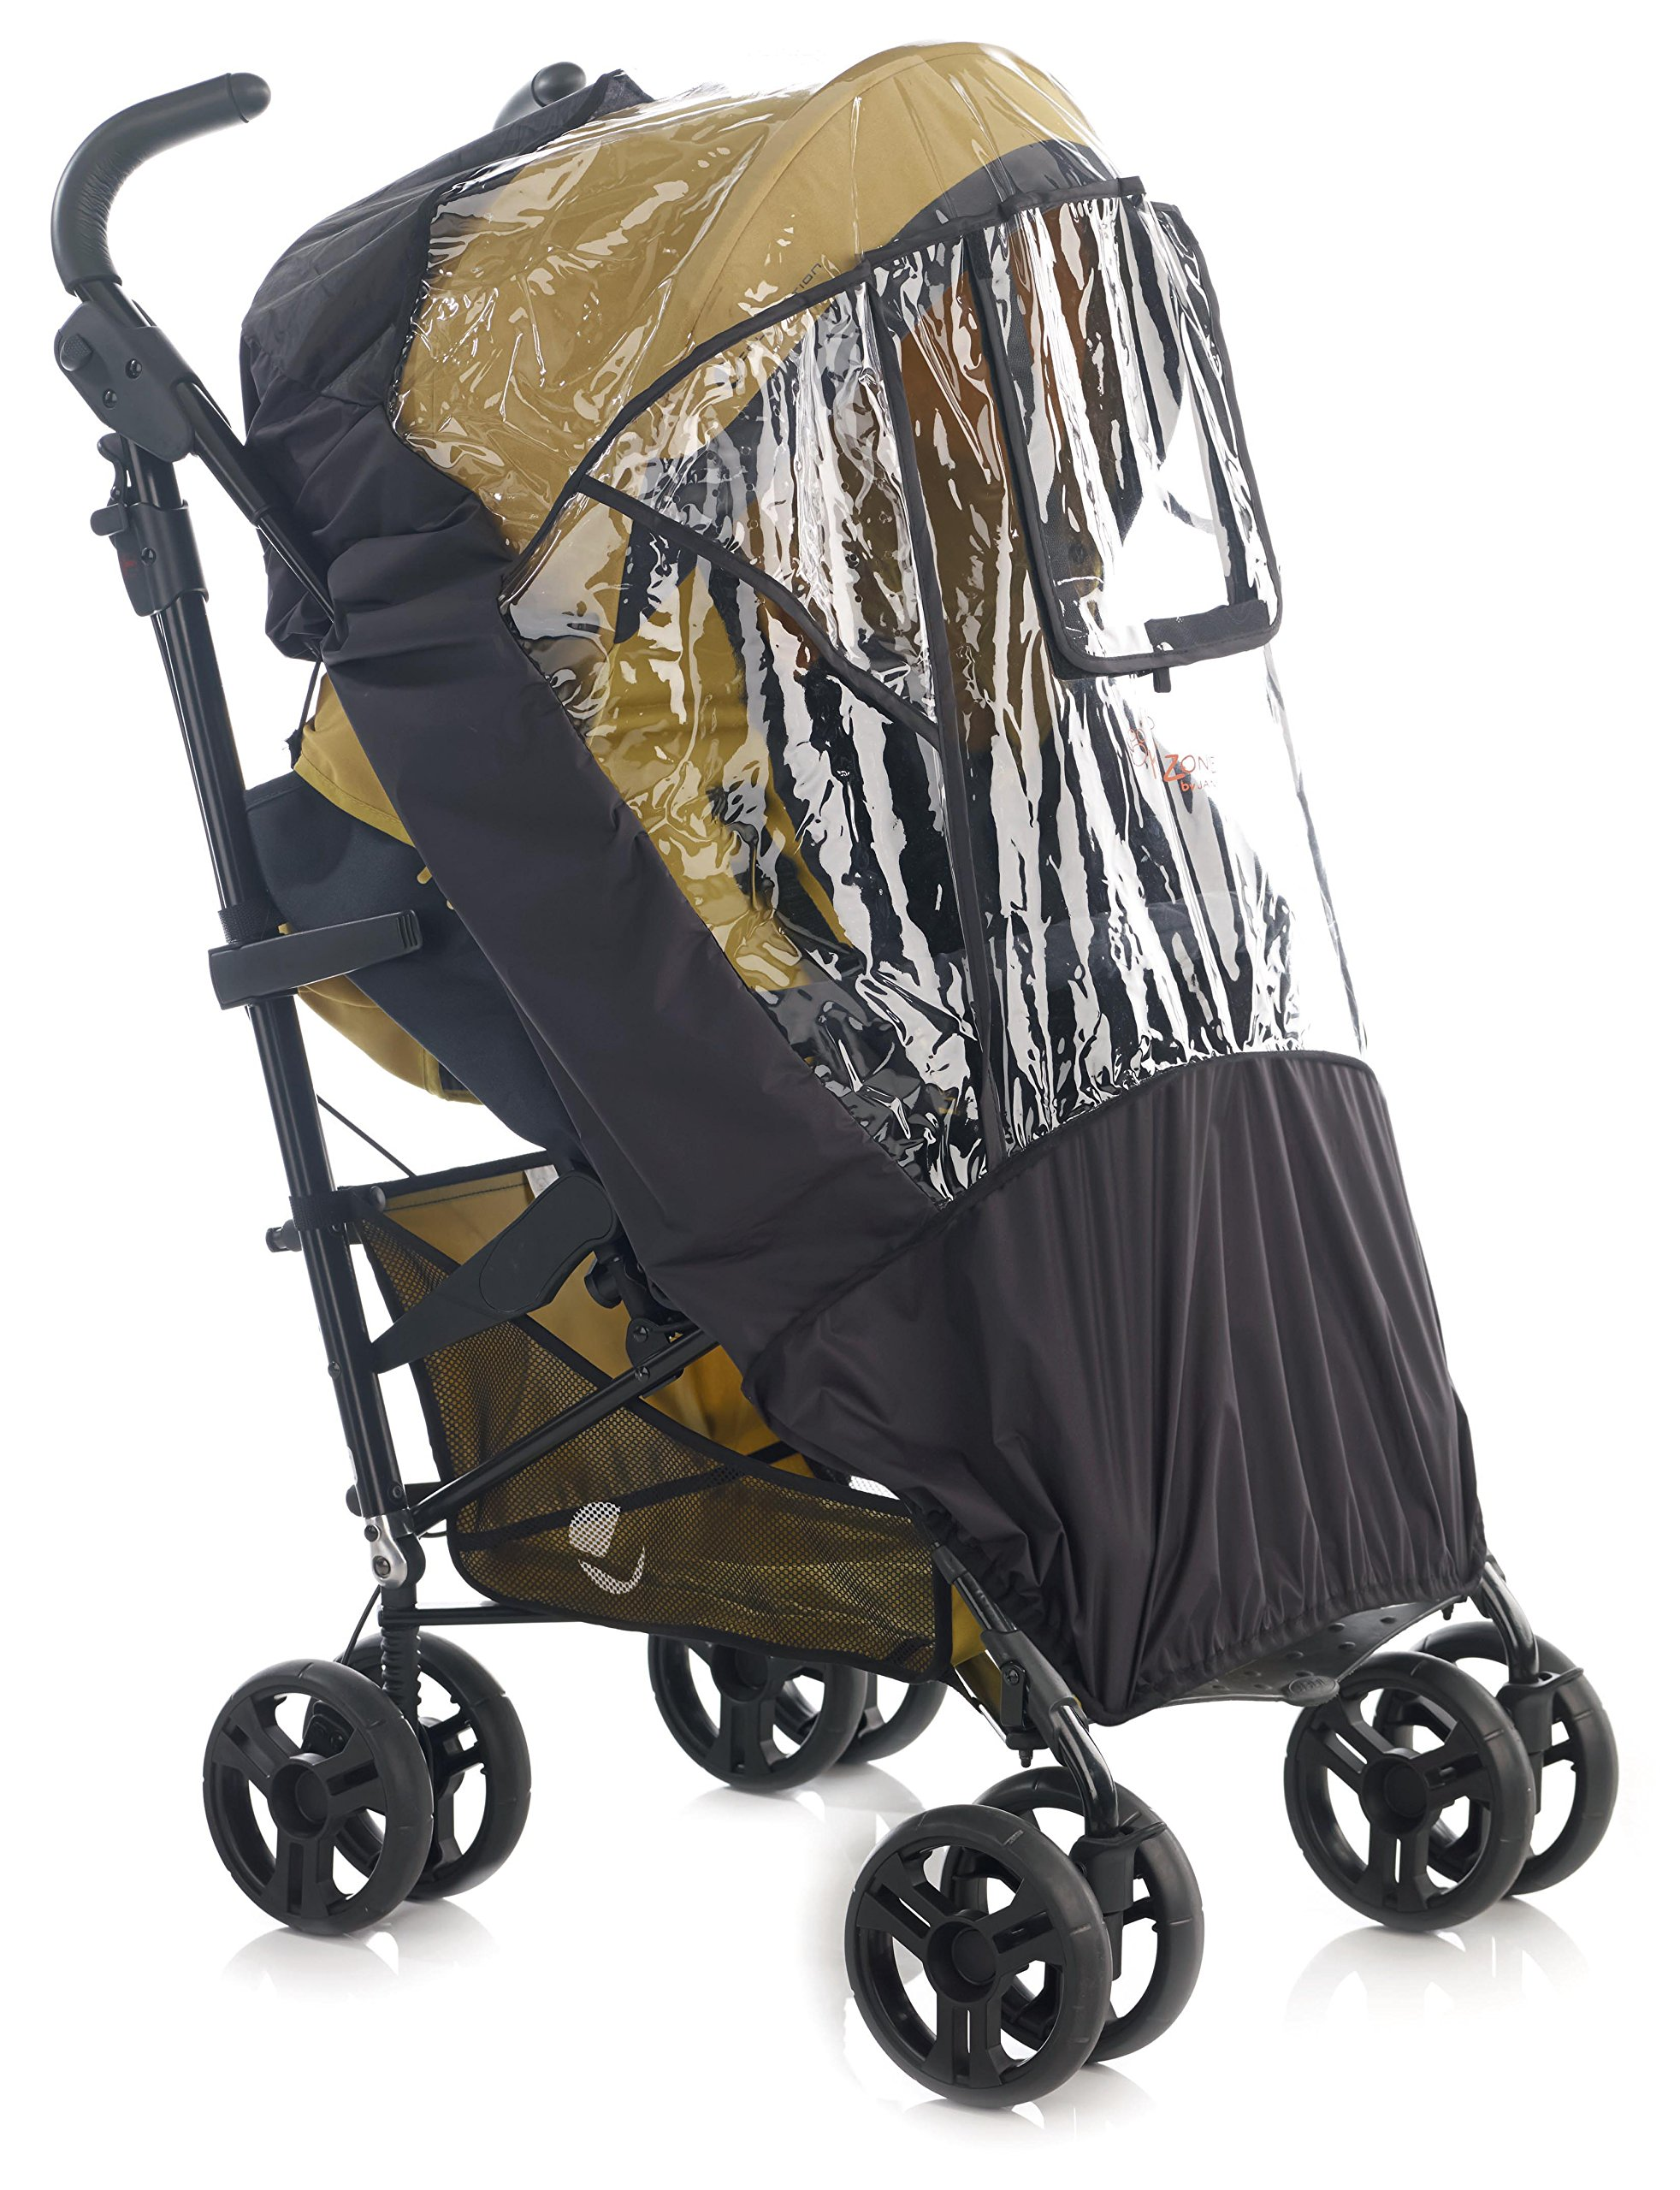 Jane Raincover for Pushchair (Unv/Nylon) Jane, Inc. Universal fitting - should fit most Pushchairs with a hood on the market Jane models we have confirmed it fits on are: Muum, Epic, Twone Single, Rider, Trider and Trider Extreme This raincover is a quality accessory that is reinforced to prolong its life 4